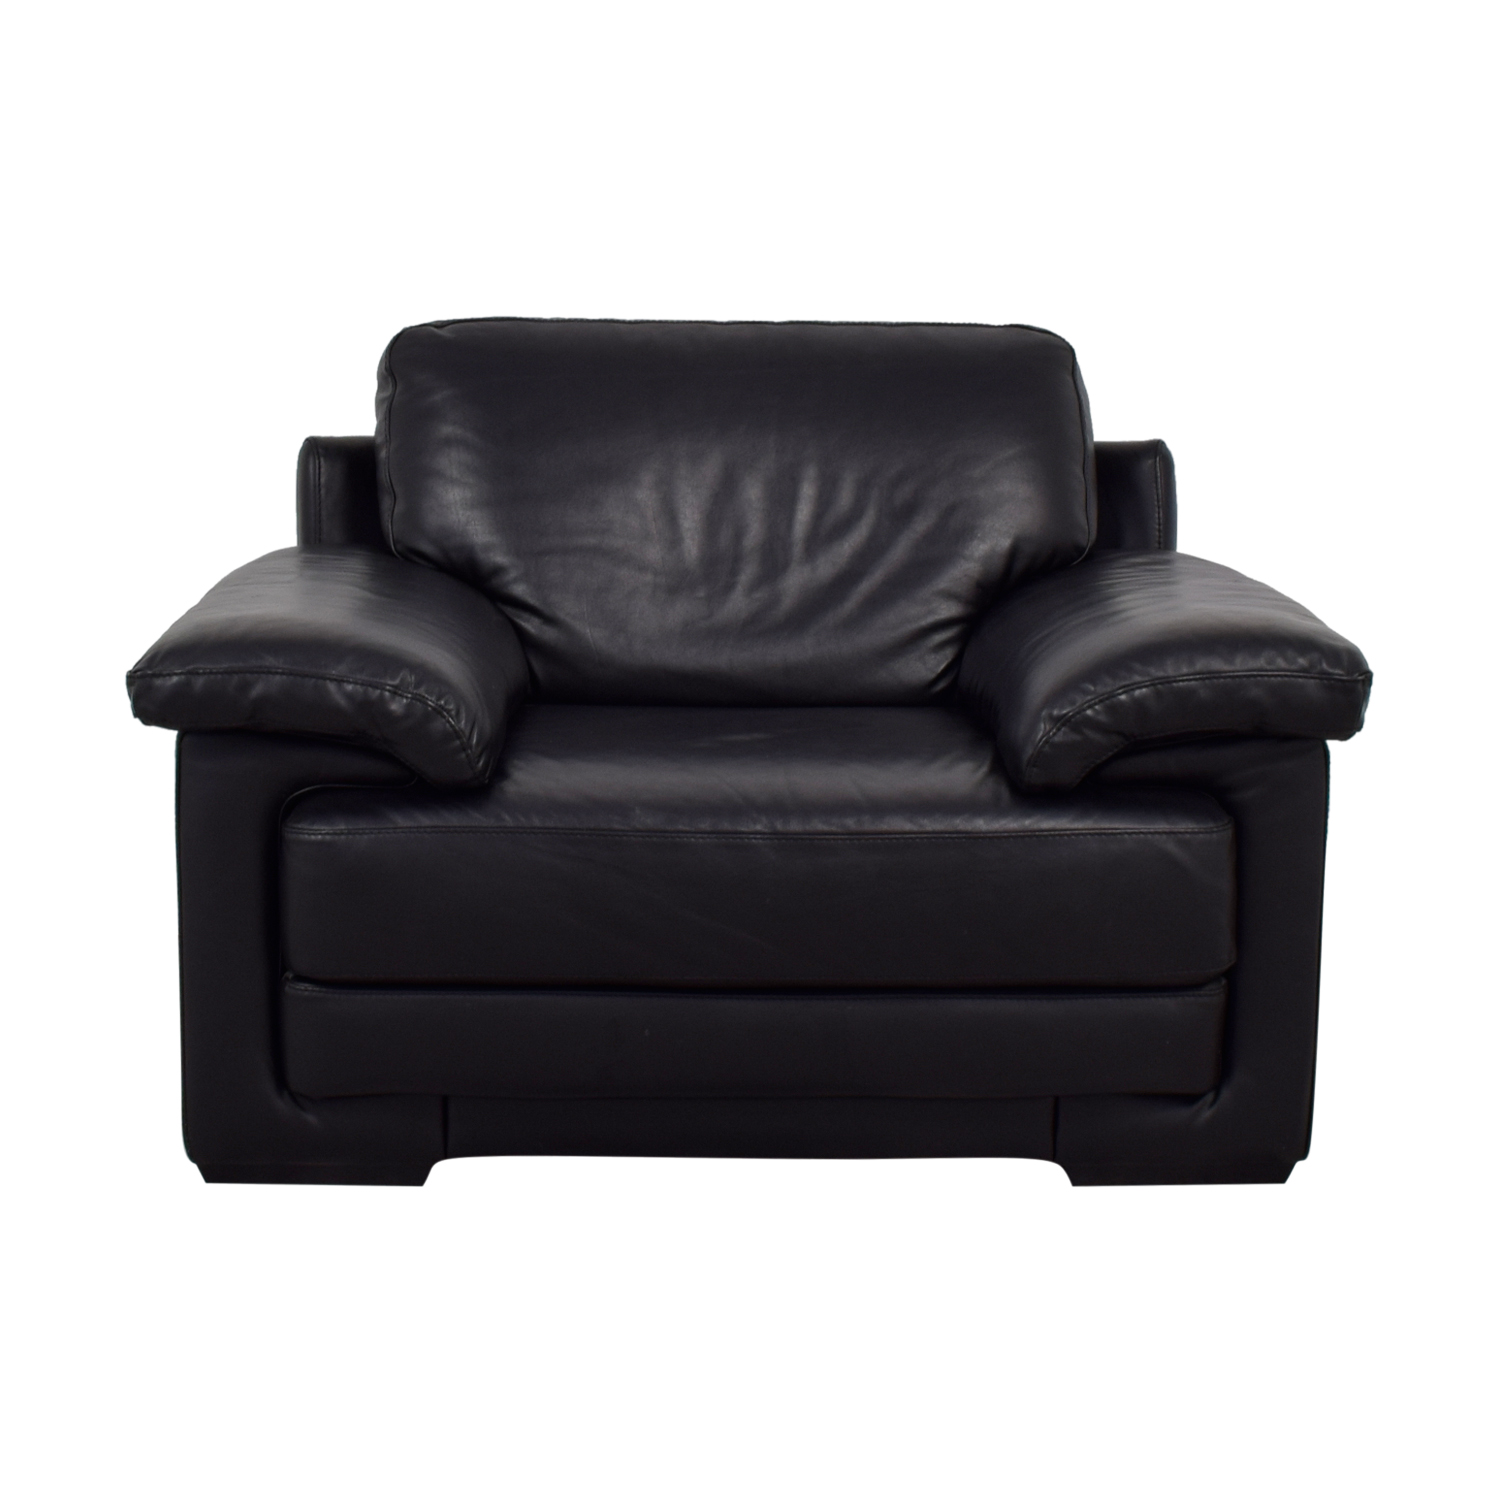 Natuzzi Natuzzi Black Leather Accent Chair coupon